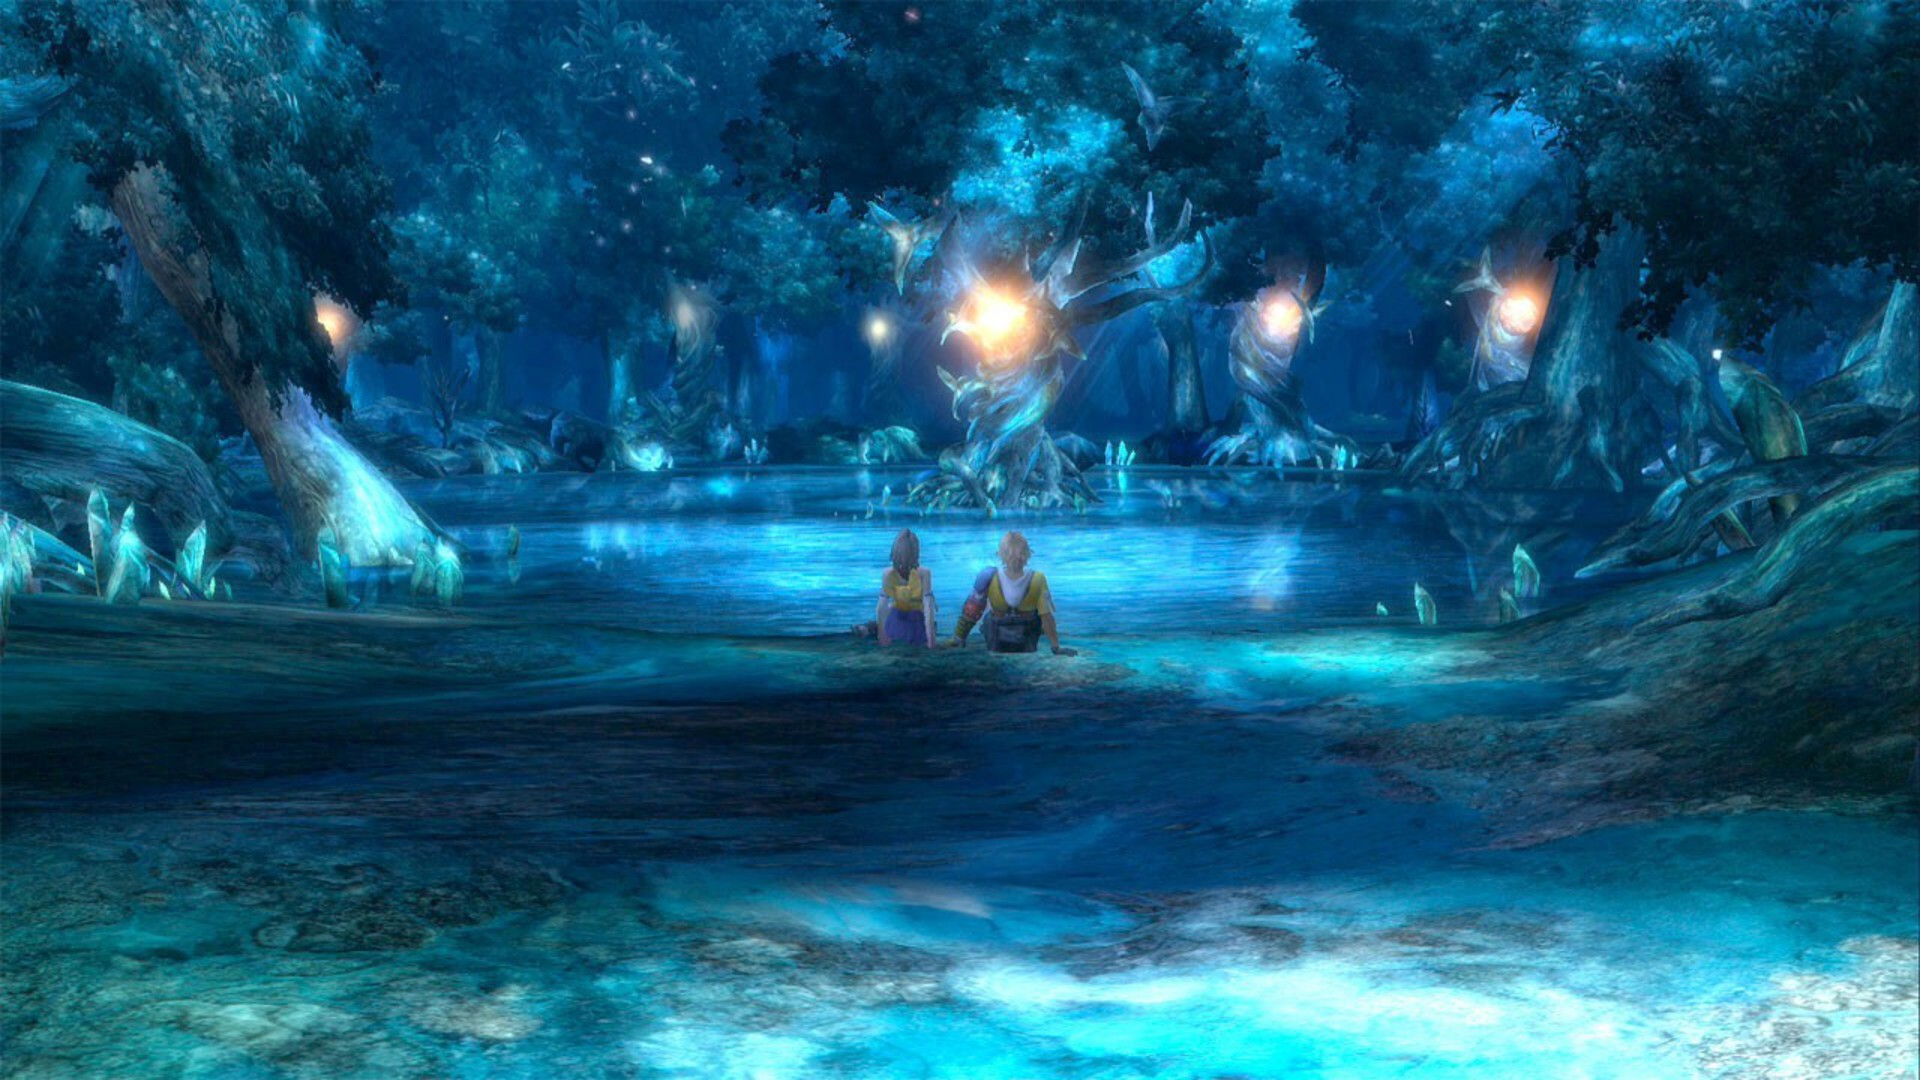 Final Fantasy X Wallpaper 1920x1080 Posted By Samantha Simpson